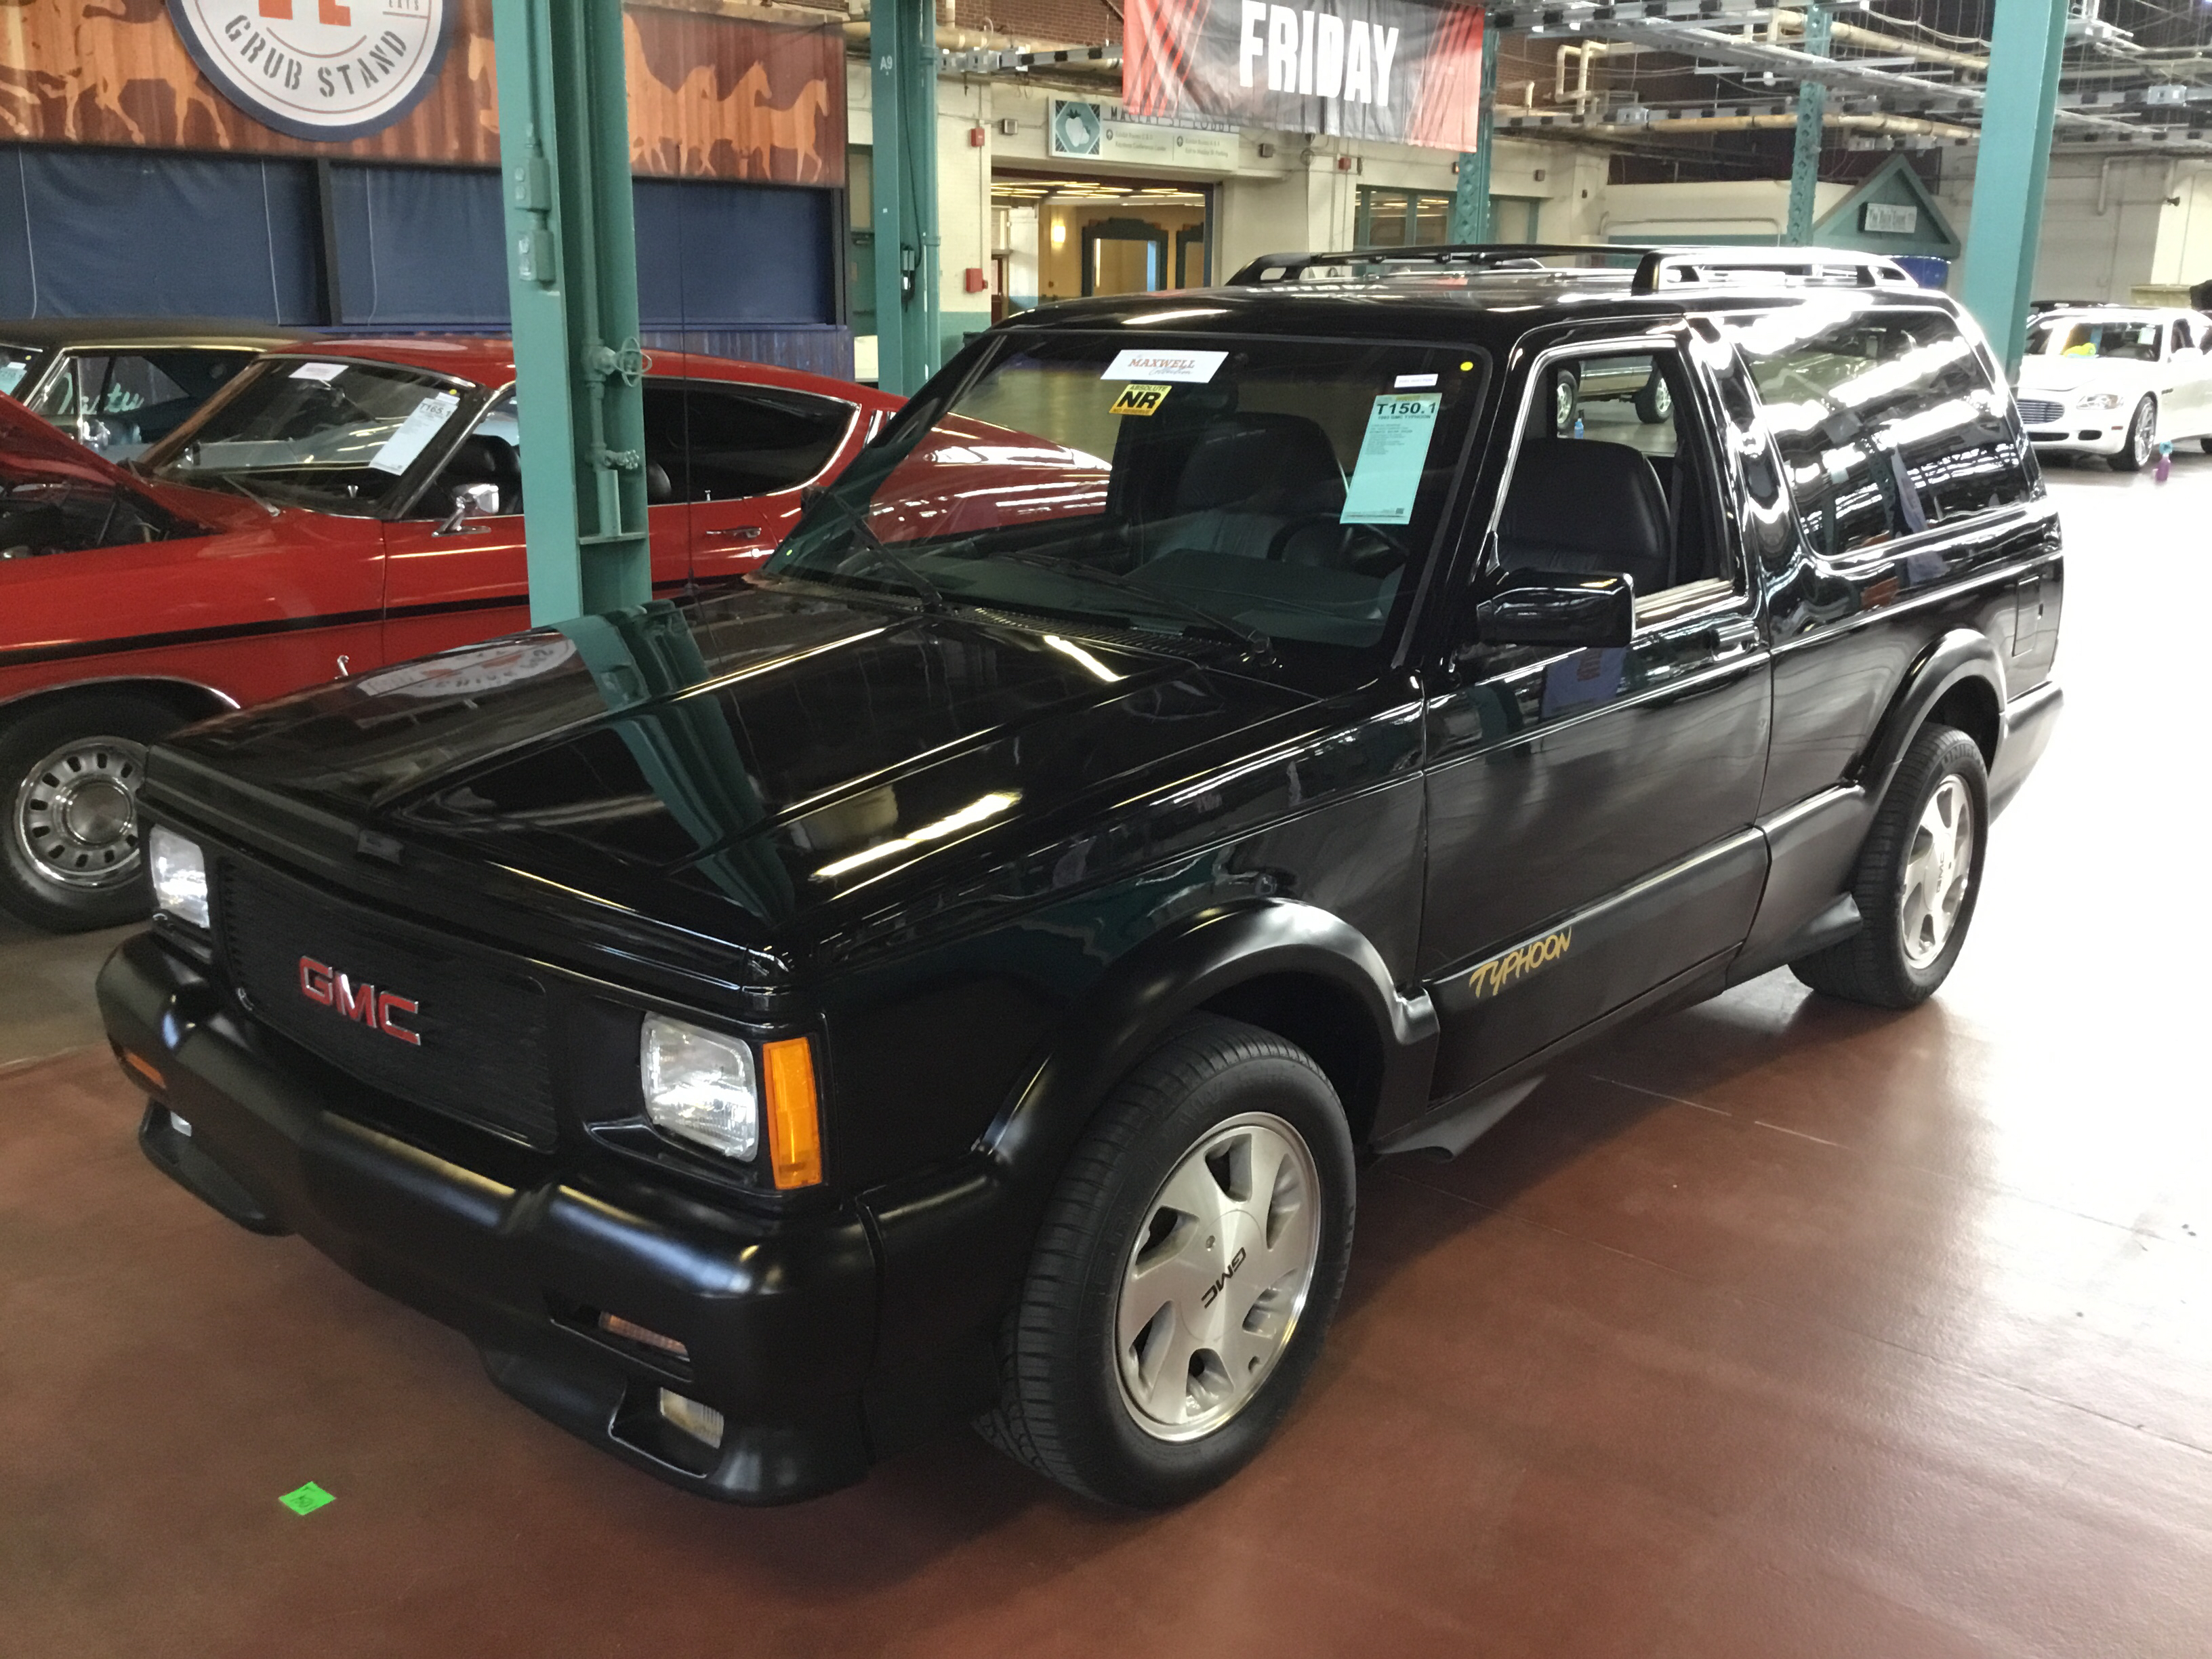 1993 GMC Typhoon (Truck) 1/2 Ton Values | Hagerty Valuation